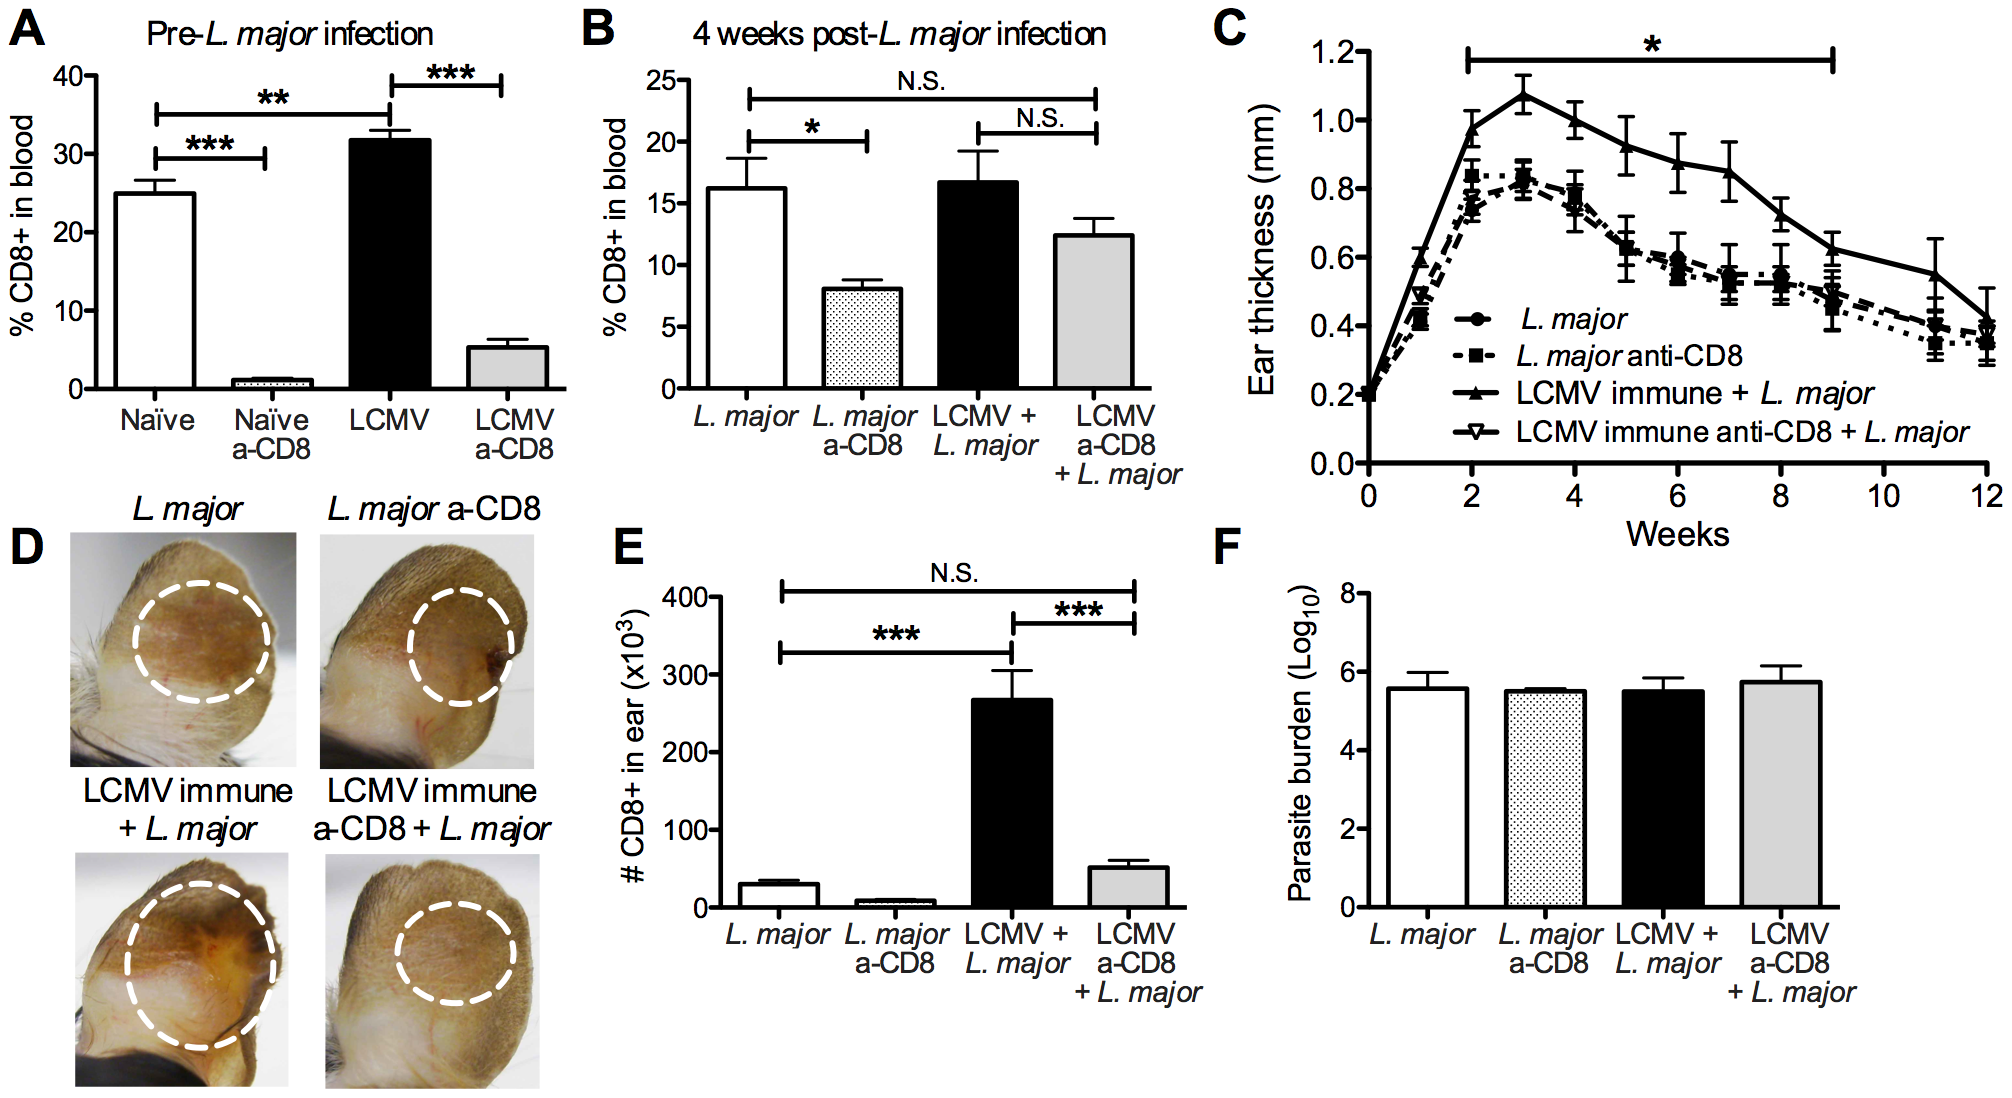 Exacerbated immunopathology is lost following depletion of CD8 T cells in LCMV immune mice prior to <i>L. major</i> infection.